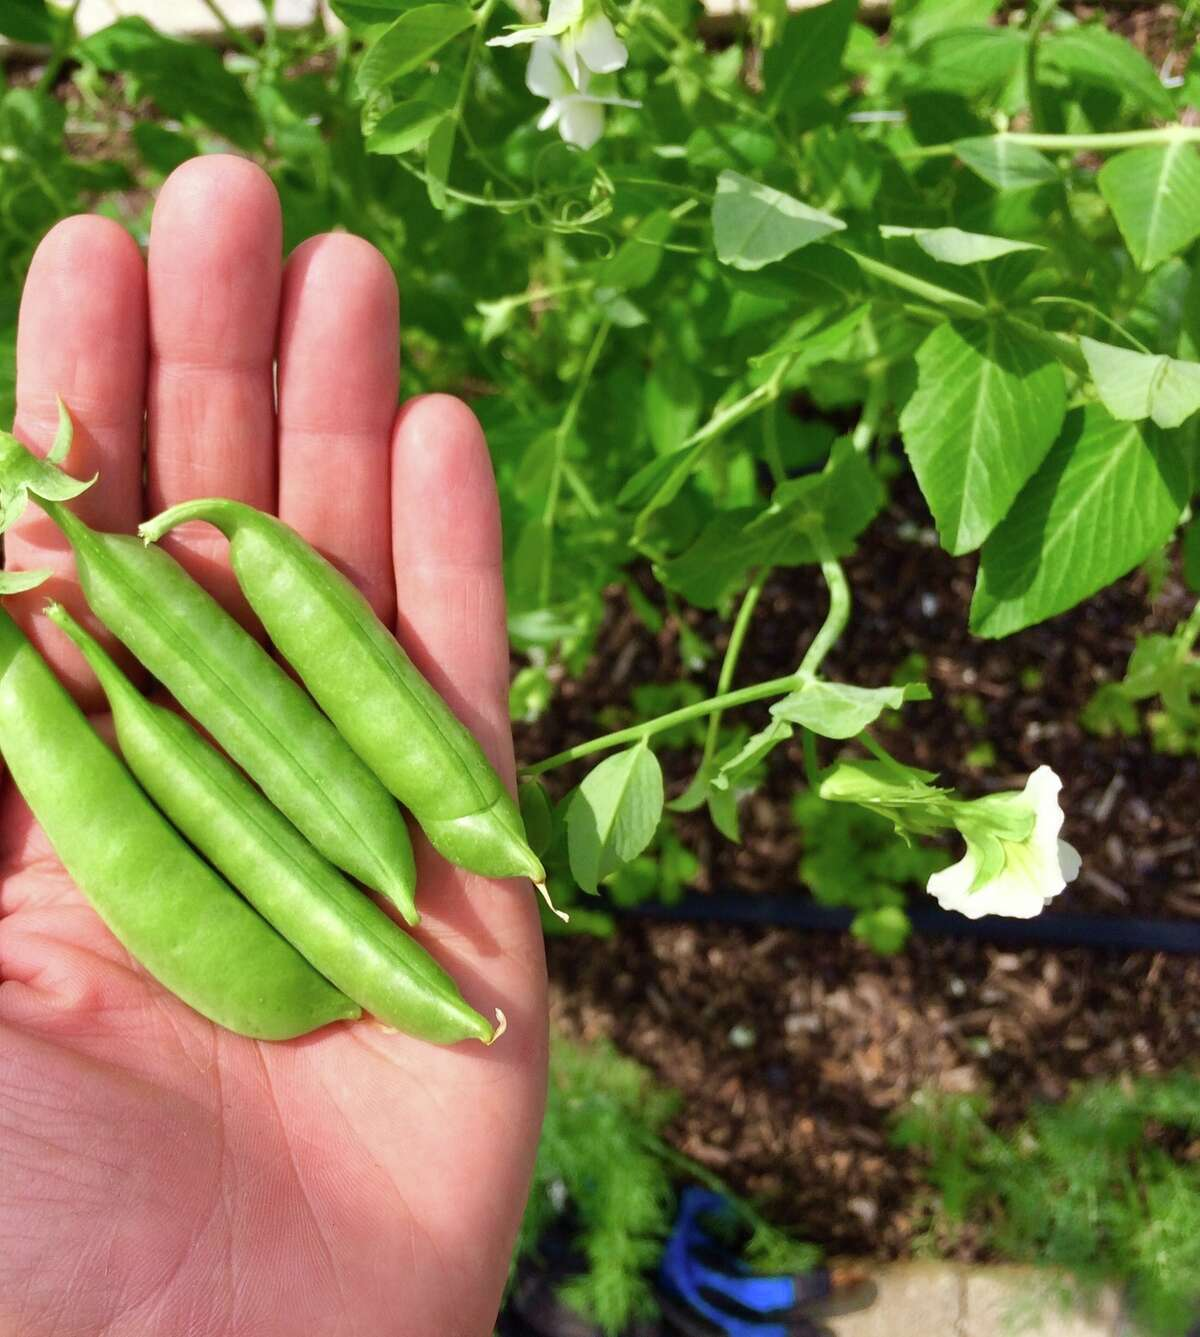 Recipe for Success is opening its Hope Farms, 10401 Scott, on Earth Day: April 22, 2017. Shown: Sweet peas growing at Hope Farms.